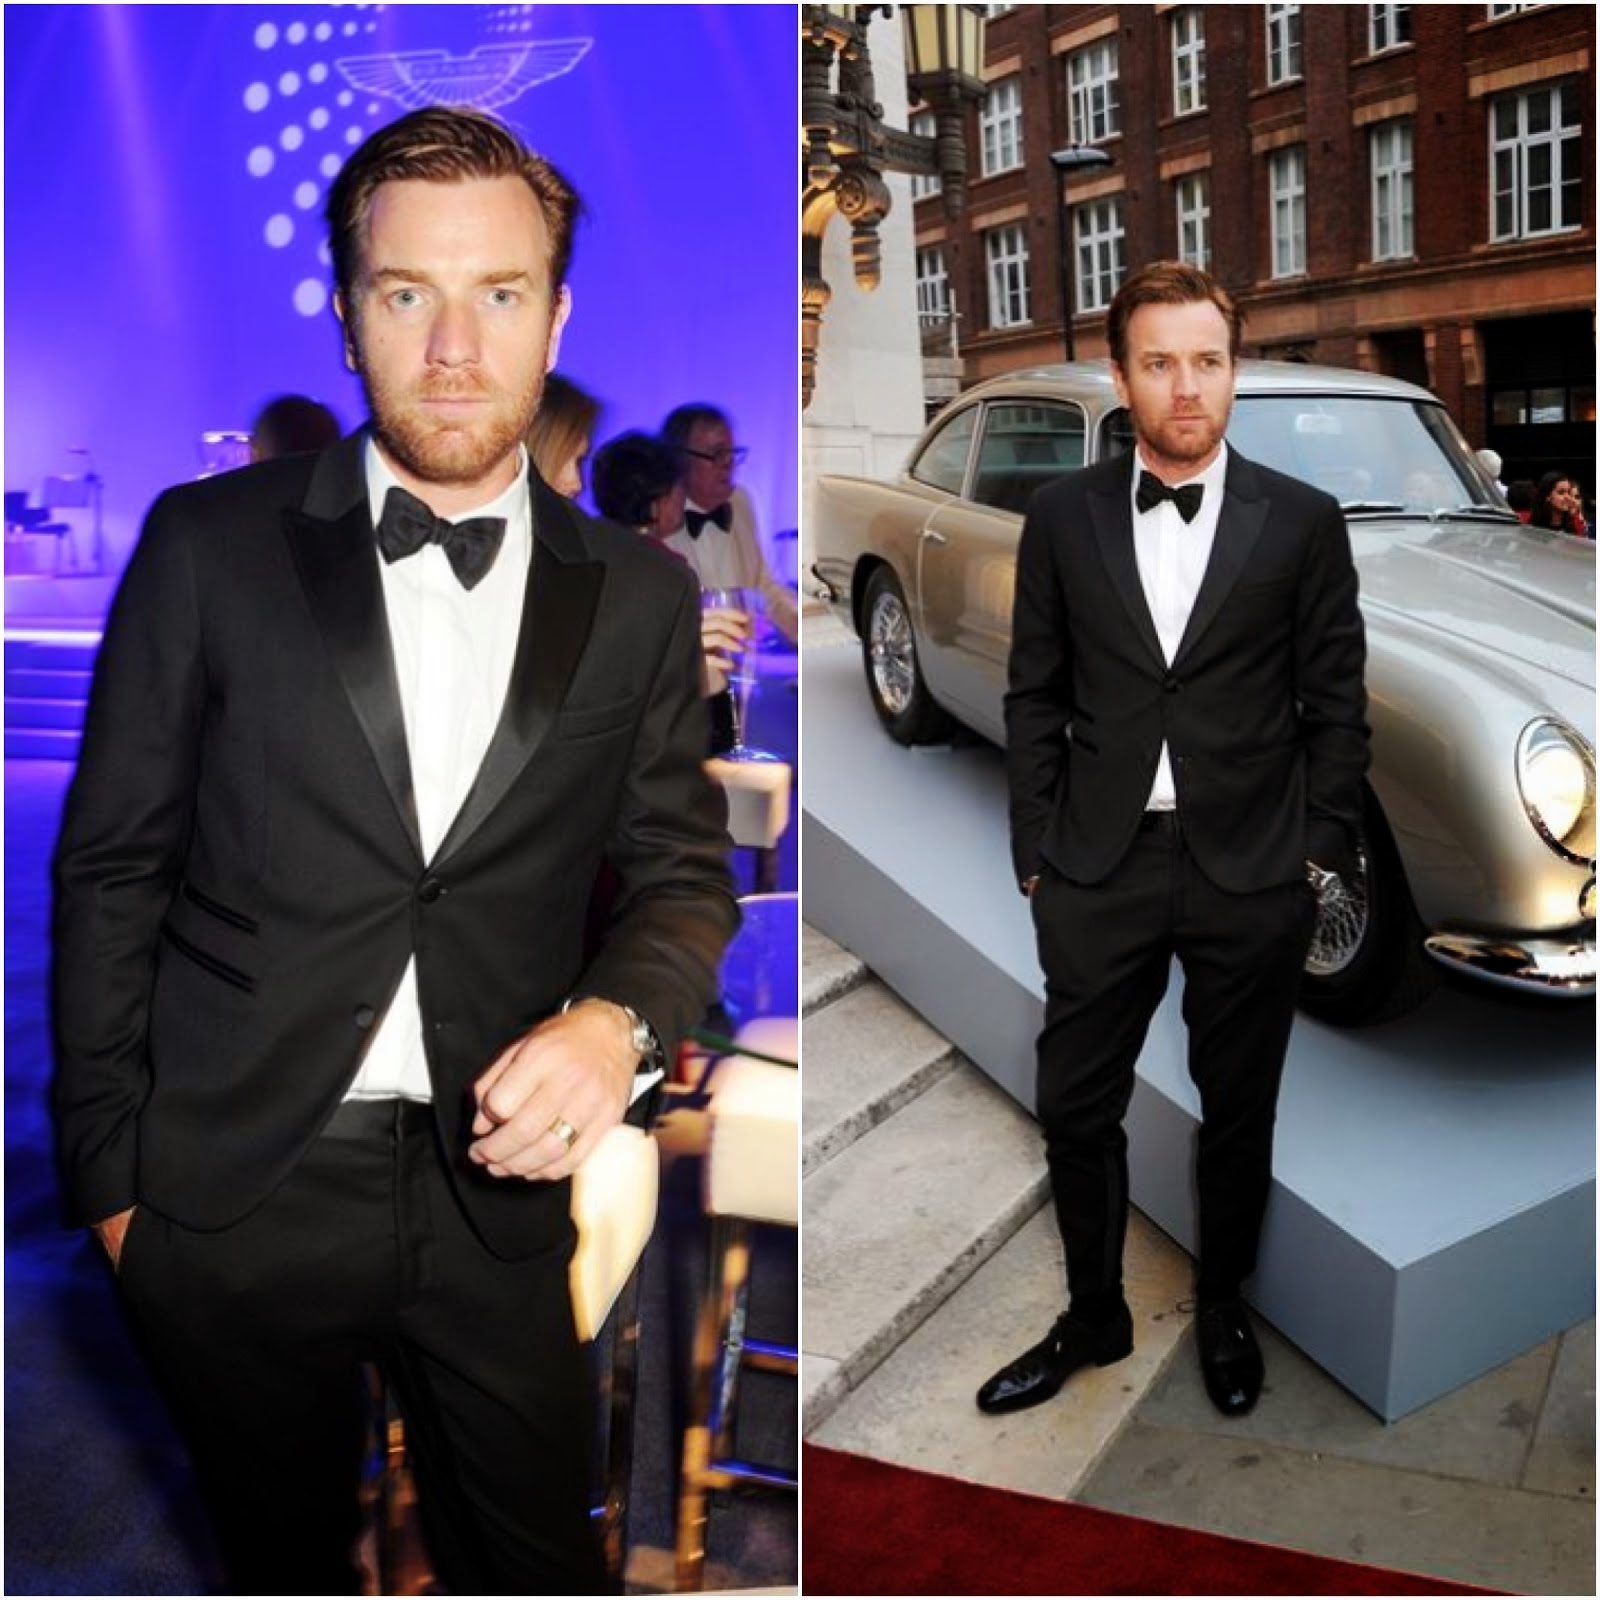 00O00 Menswear Blog: Ewan McGregor in Neil Barrett and Jimmy Choo 'Prescott' patent leather and suede shoes - Aston Martin's Centenary Birthday Party, London July 2013